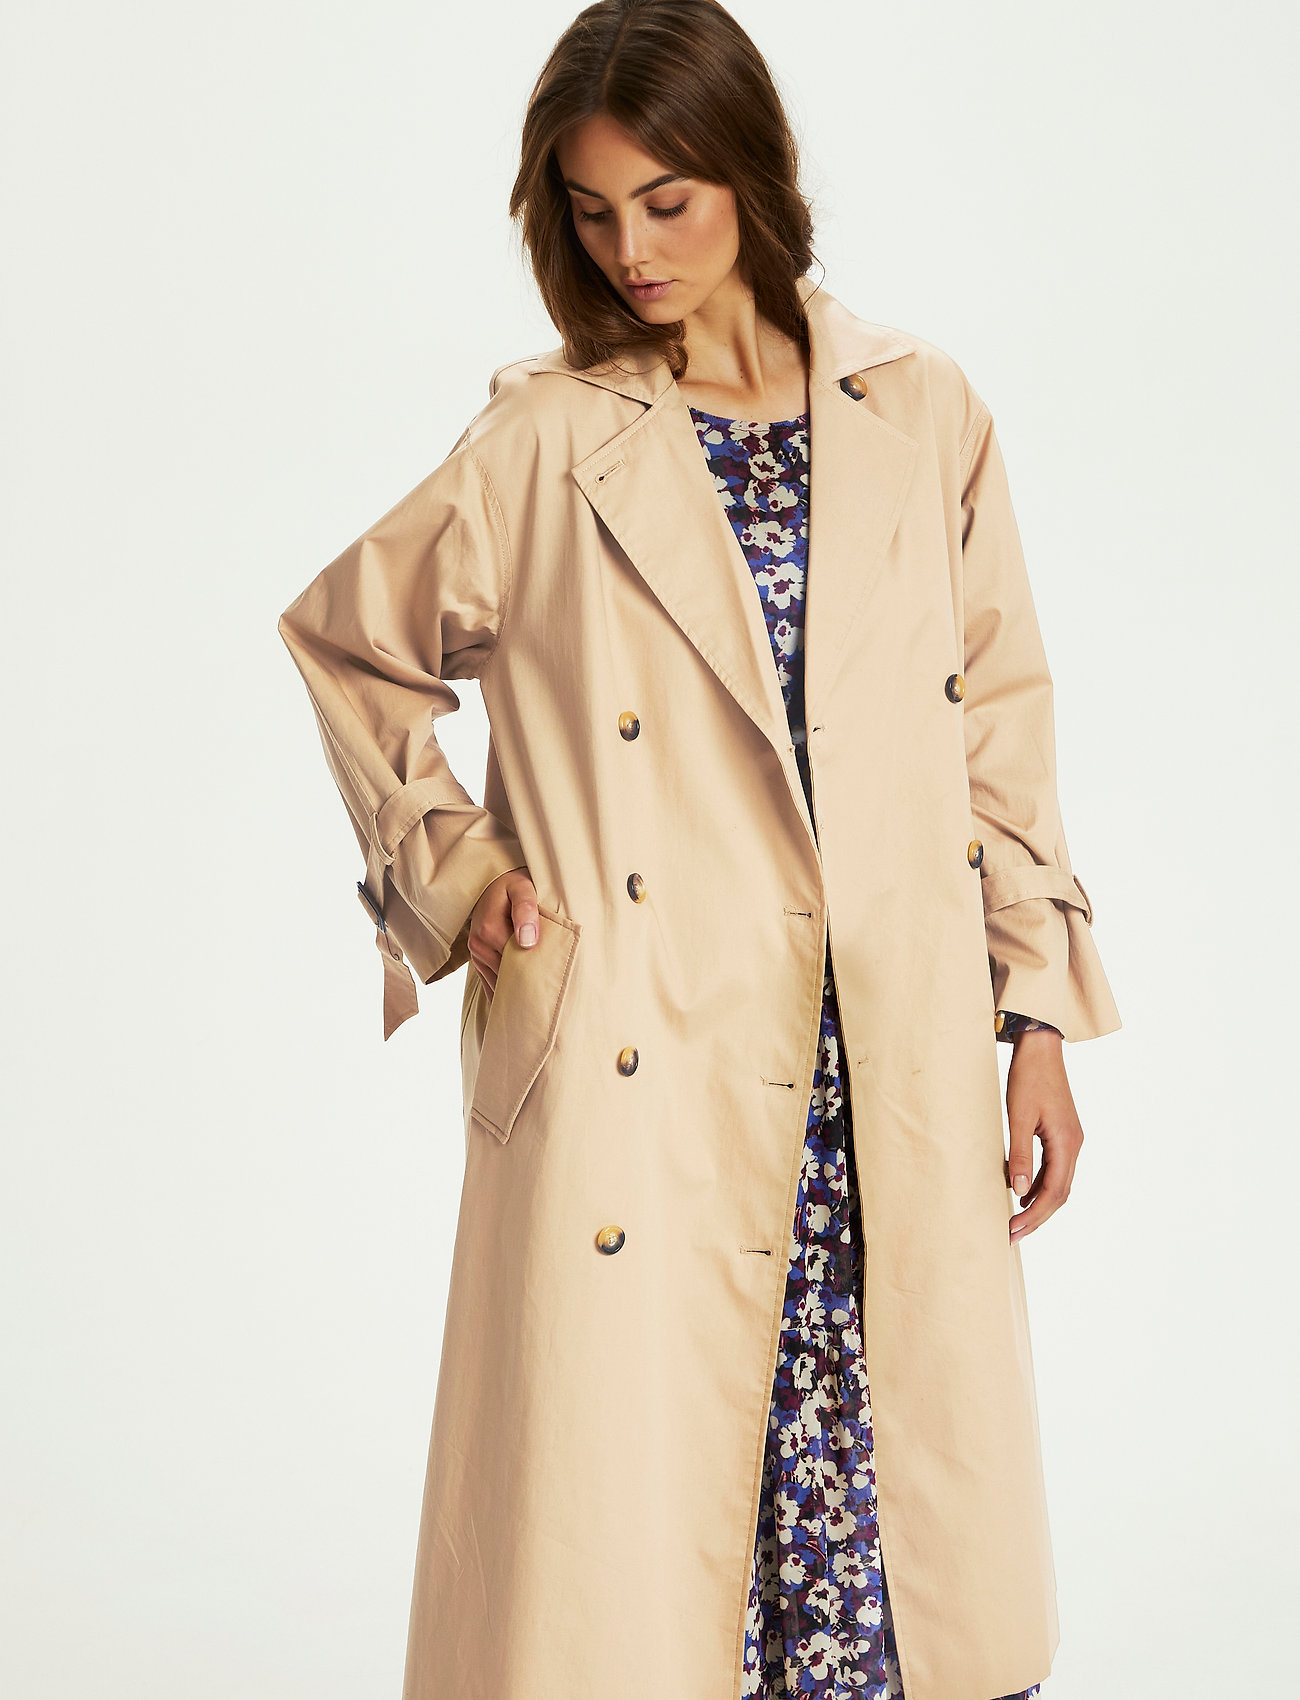 Soaked in Luxury - SLOhio Trench Coat - trenchcoats - curds & whey - 0